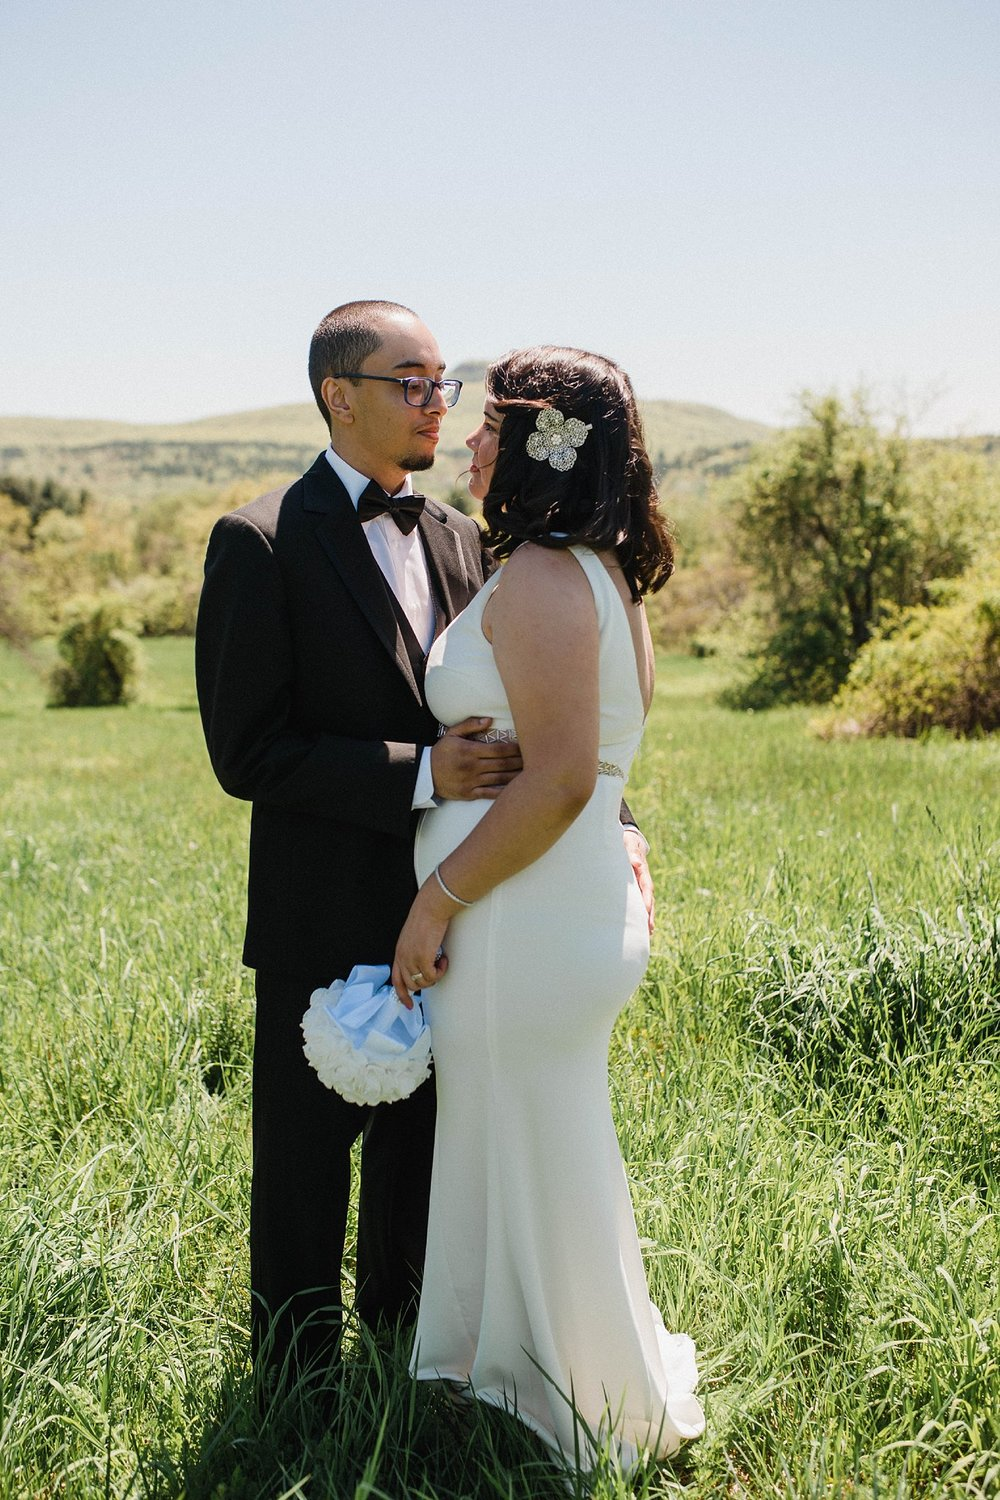 Western Massachusetts Elopement Photographer | Massachusetts Elopement | Mt. Pollux, Amherst Elopement Photography | Shelby Chari Photography